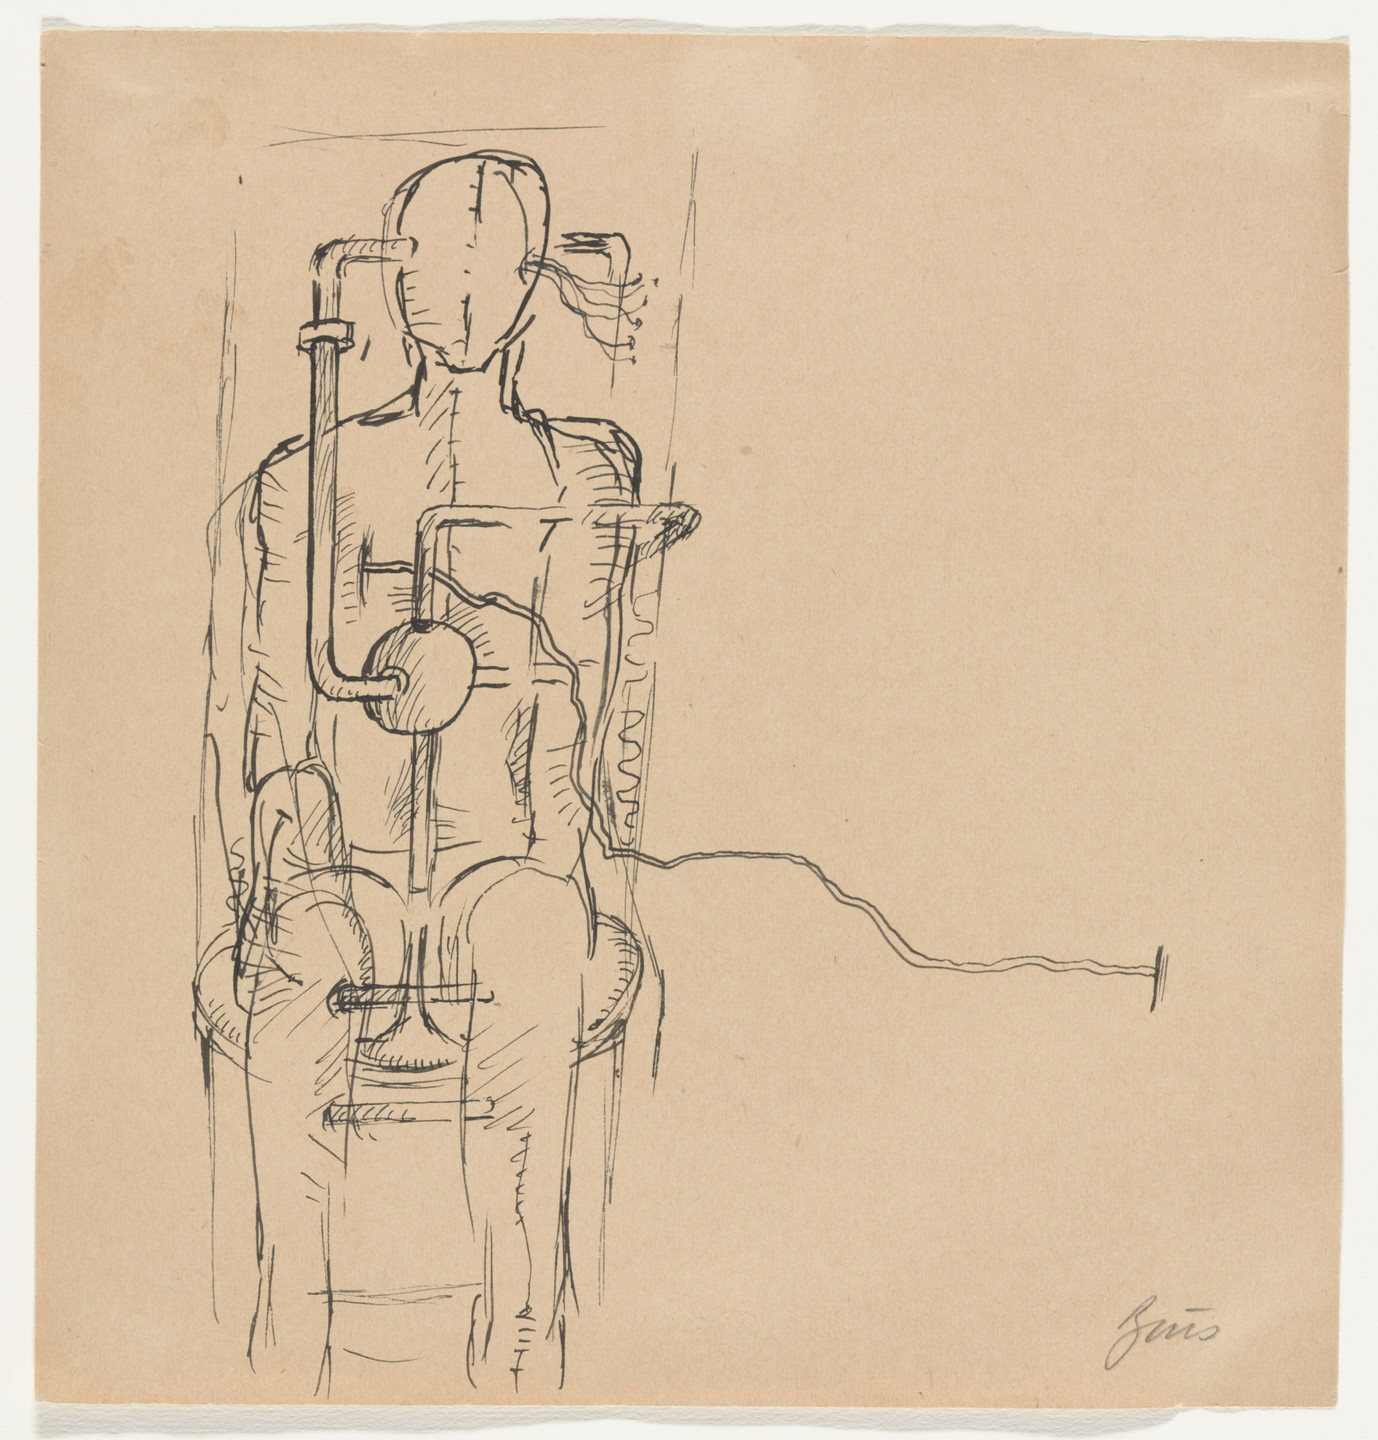 Günter Brus. Untitled (action drawing). (1960s)